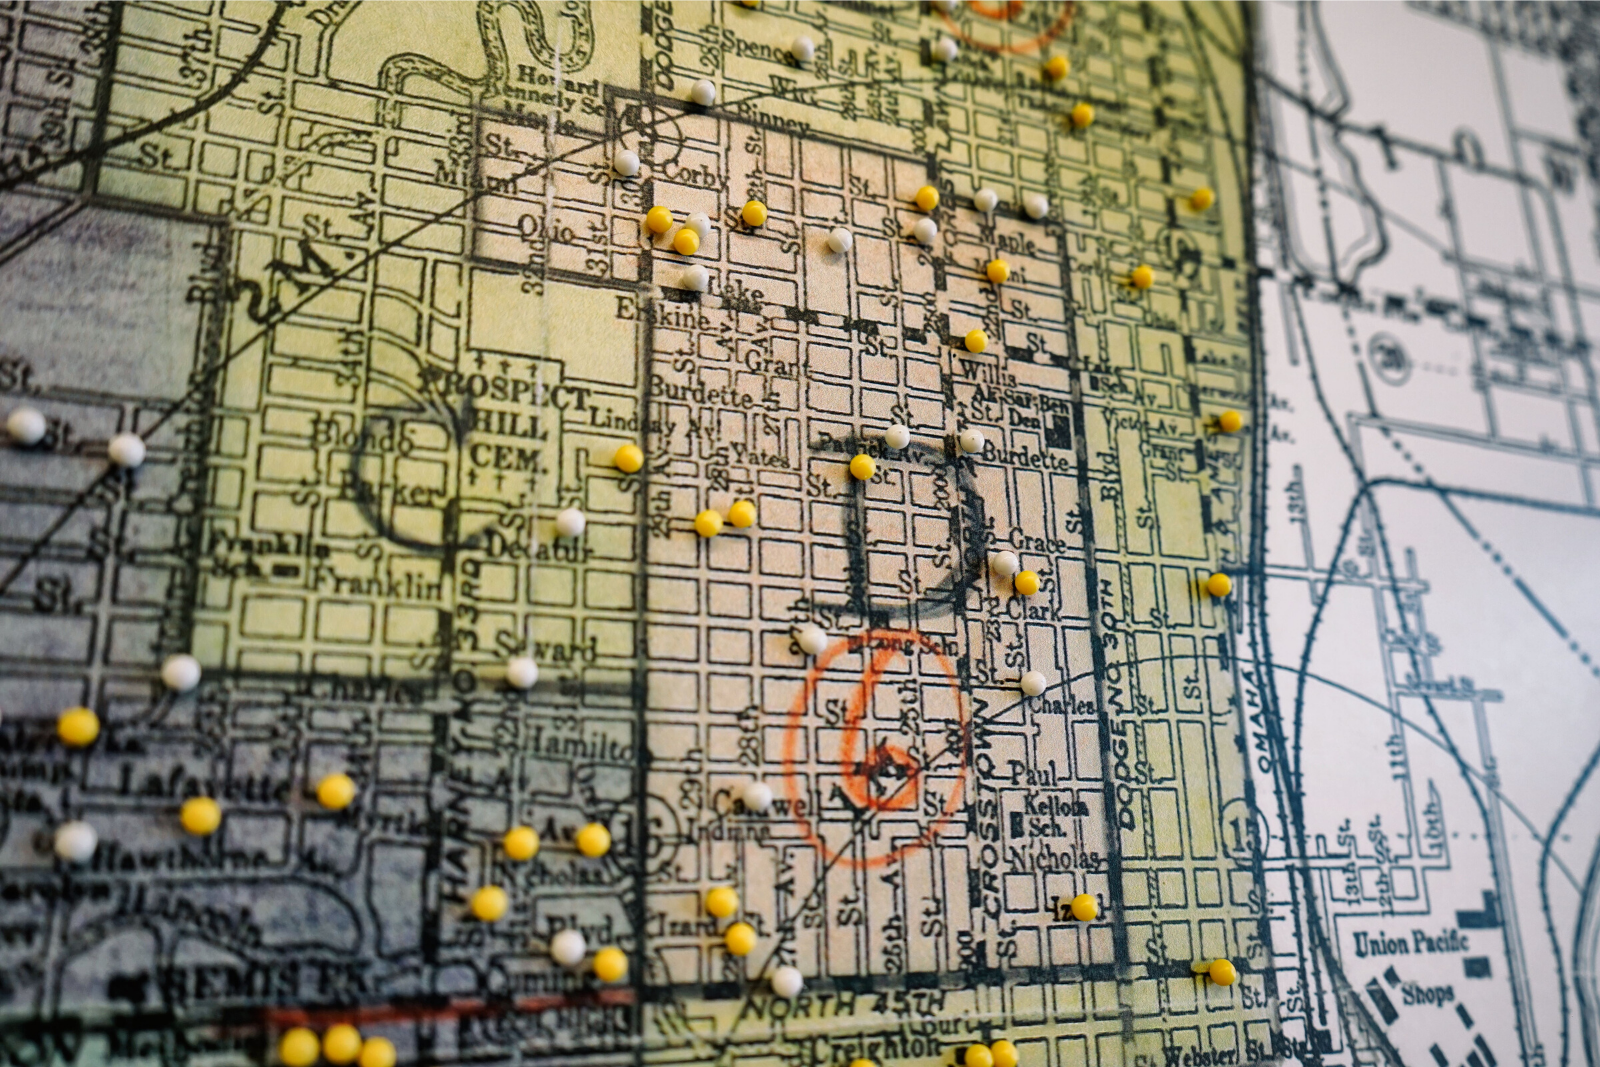 A close up view of Omaha's Redline map with pins placed for home locations of exhibit visitors. (Stories from the redline)